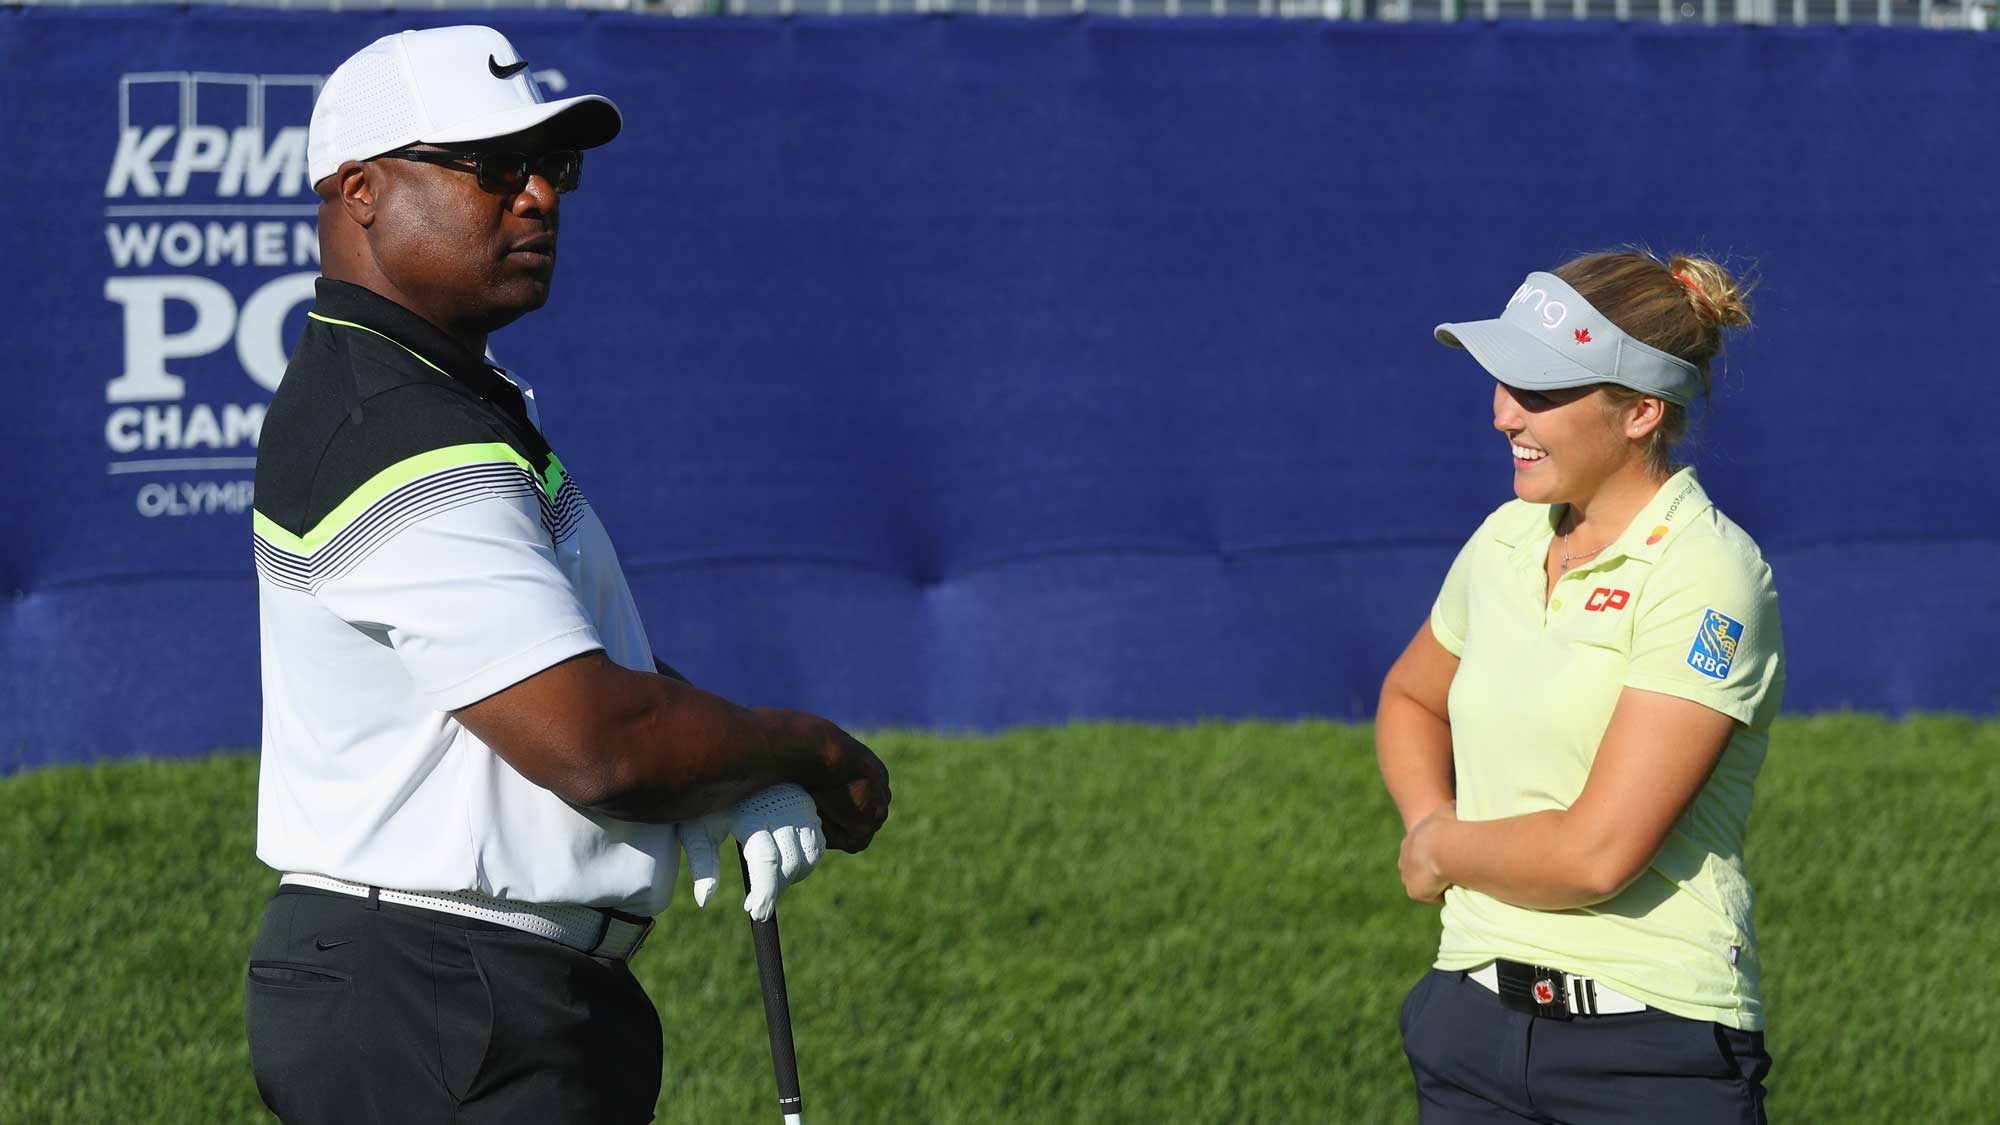 Former NFL star Bo Jackson (L) chats with Brooke Henderson of Canada during the pro-am prior to the start of the 2017 KPMG Women's PGA Championship